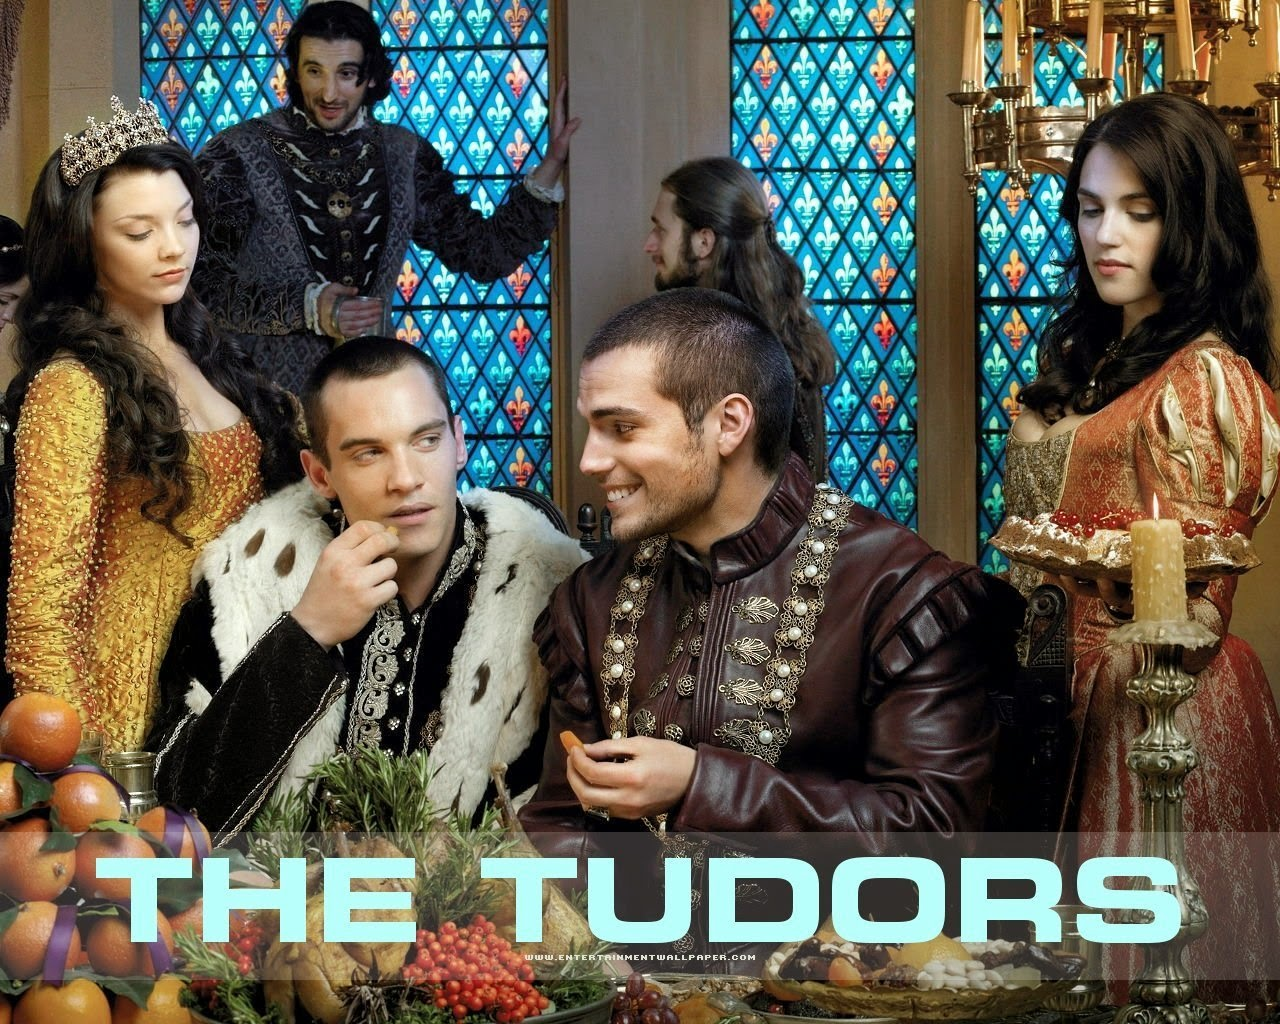 primeira temporada de the tudors